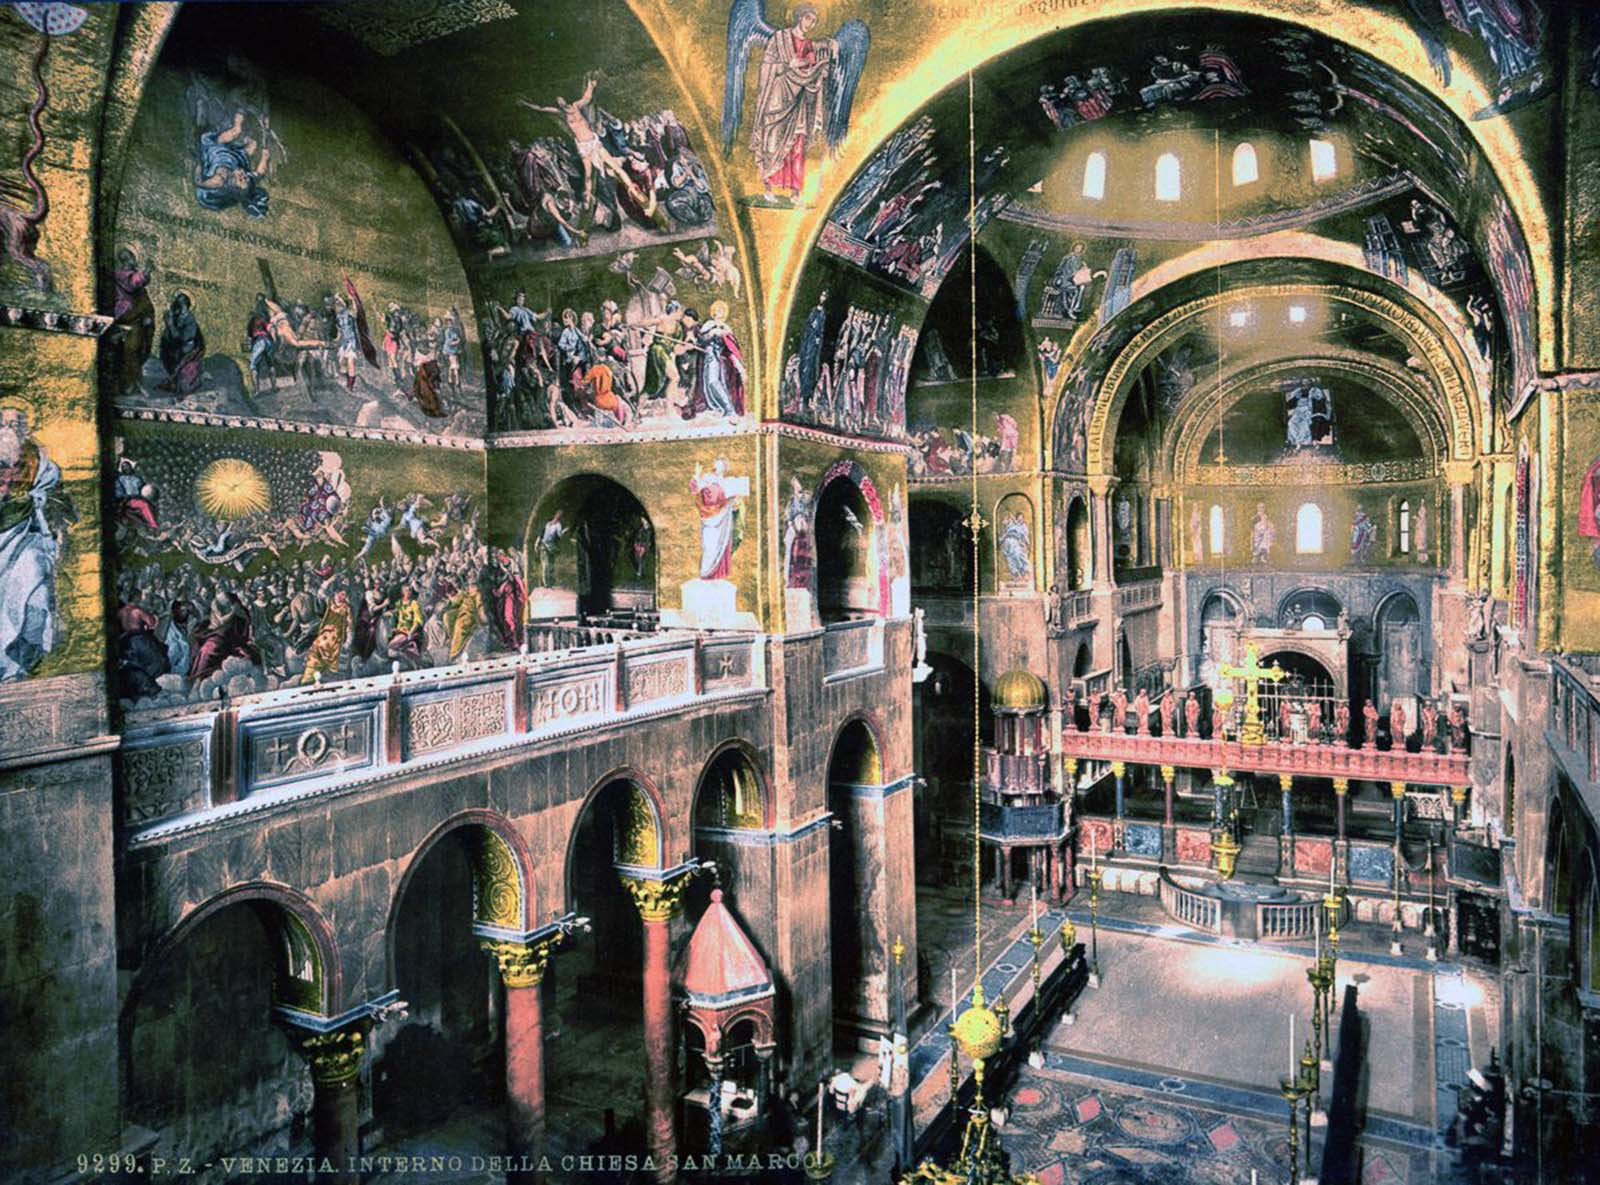 venice-in-beautiful-old-color-images-1890_4.jpg